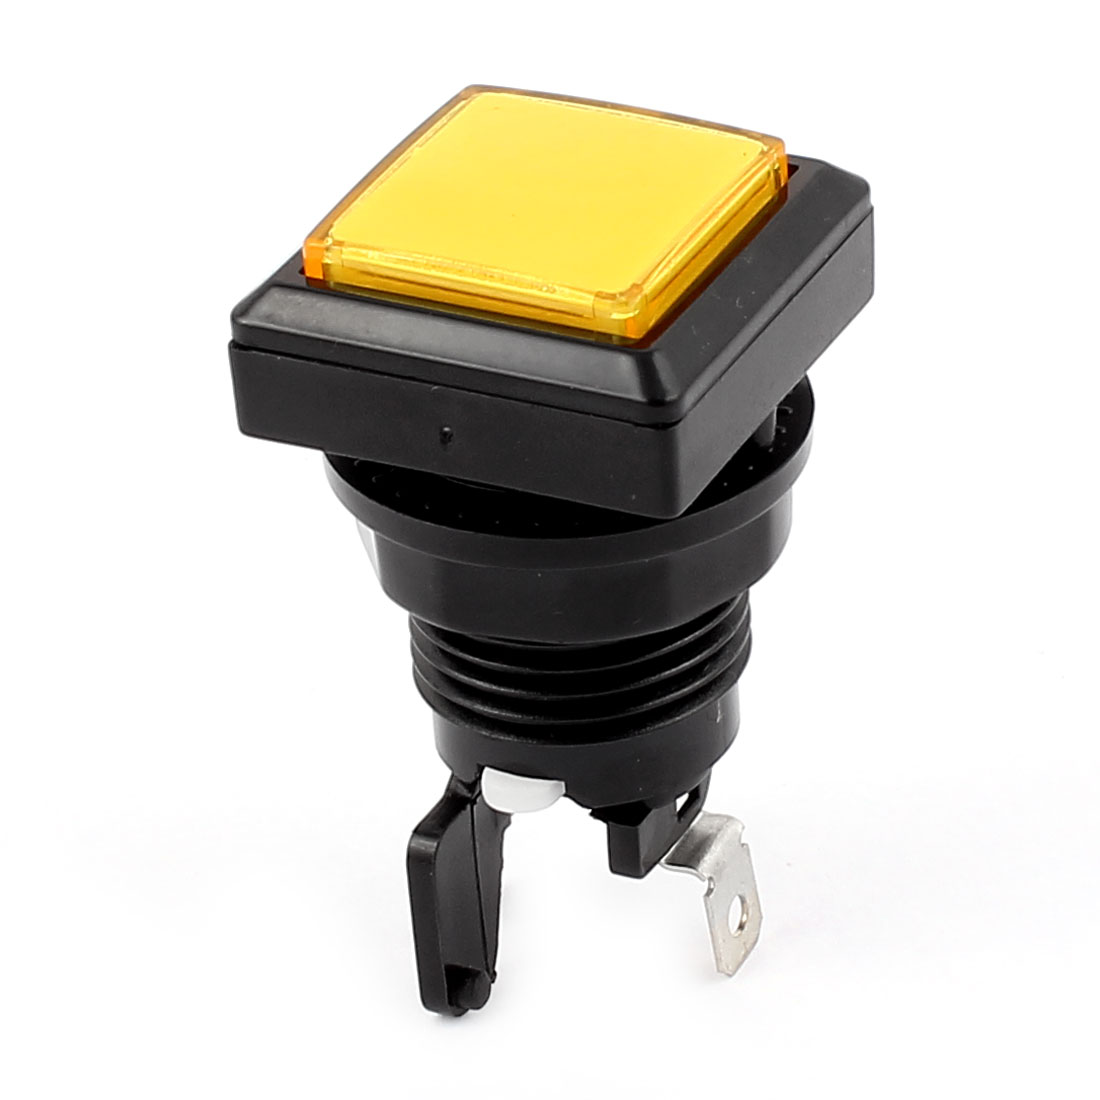 Yellow Square Cap Momentary Push Button Switch for Gaming Machine with Lamp